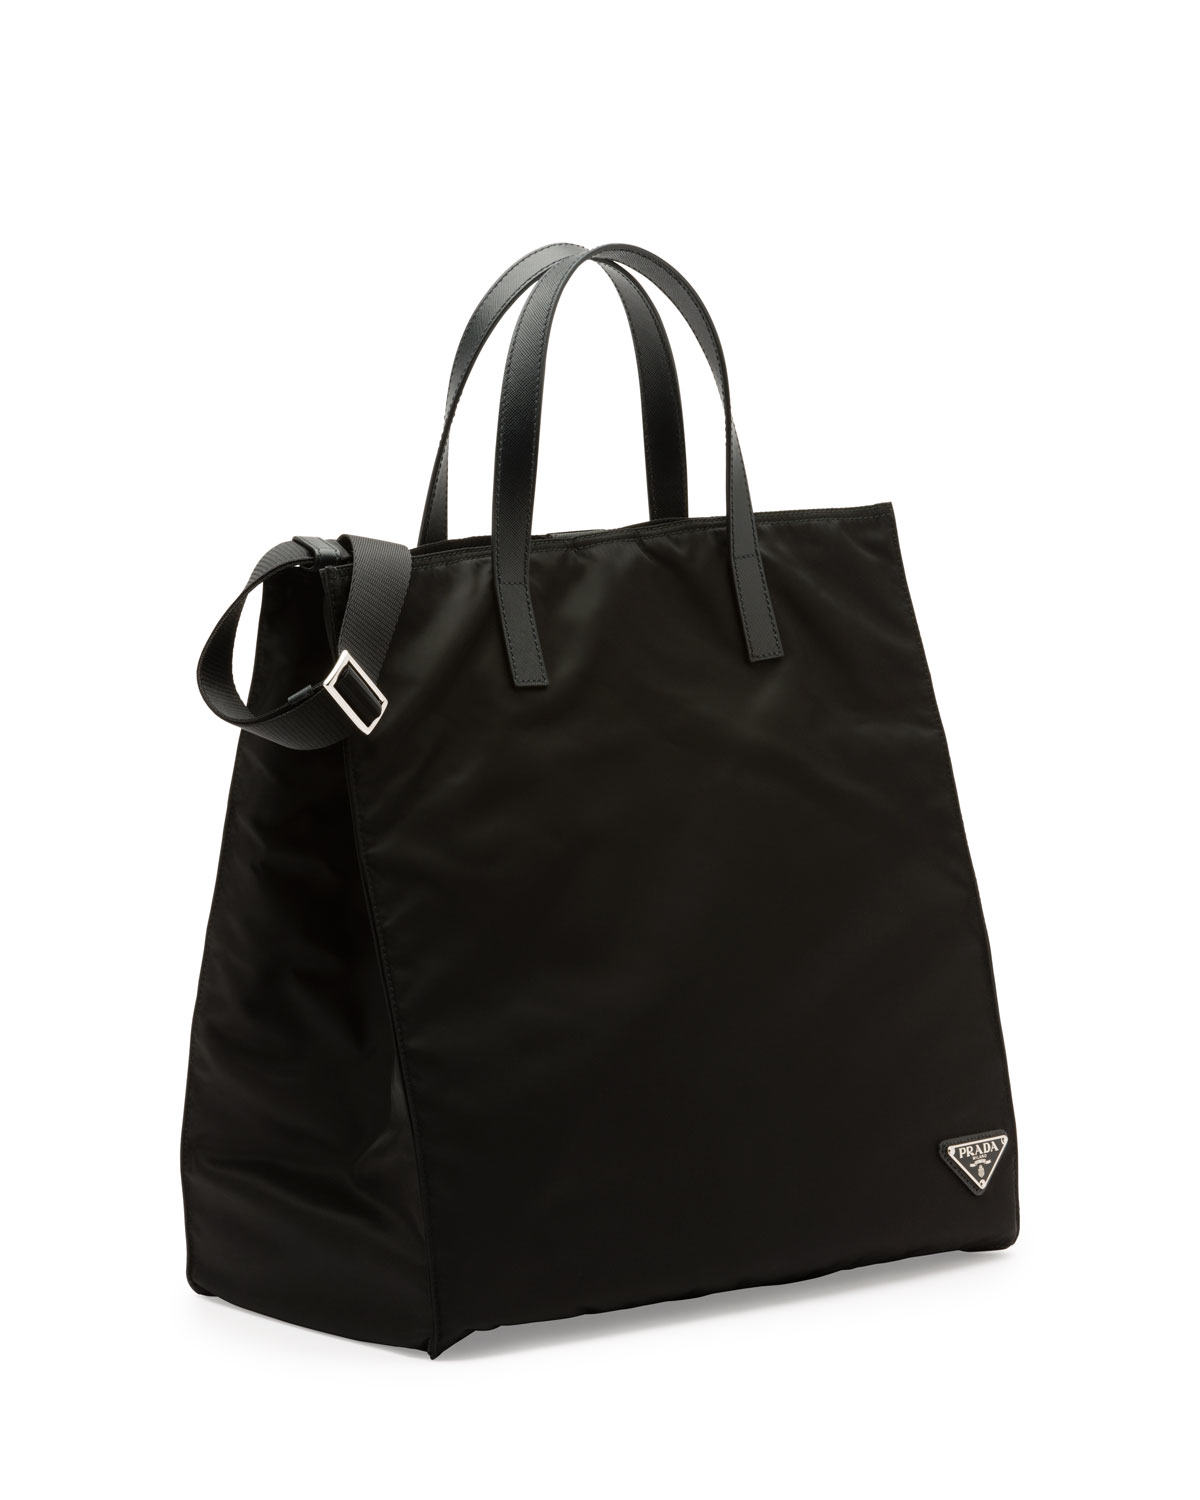 prada handbags nylon tote